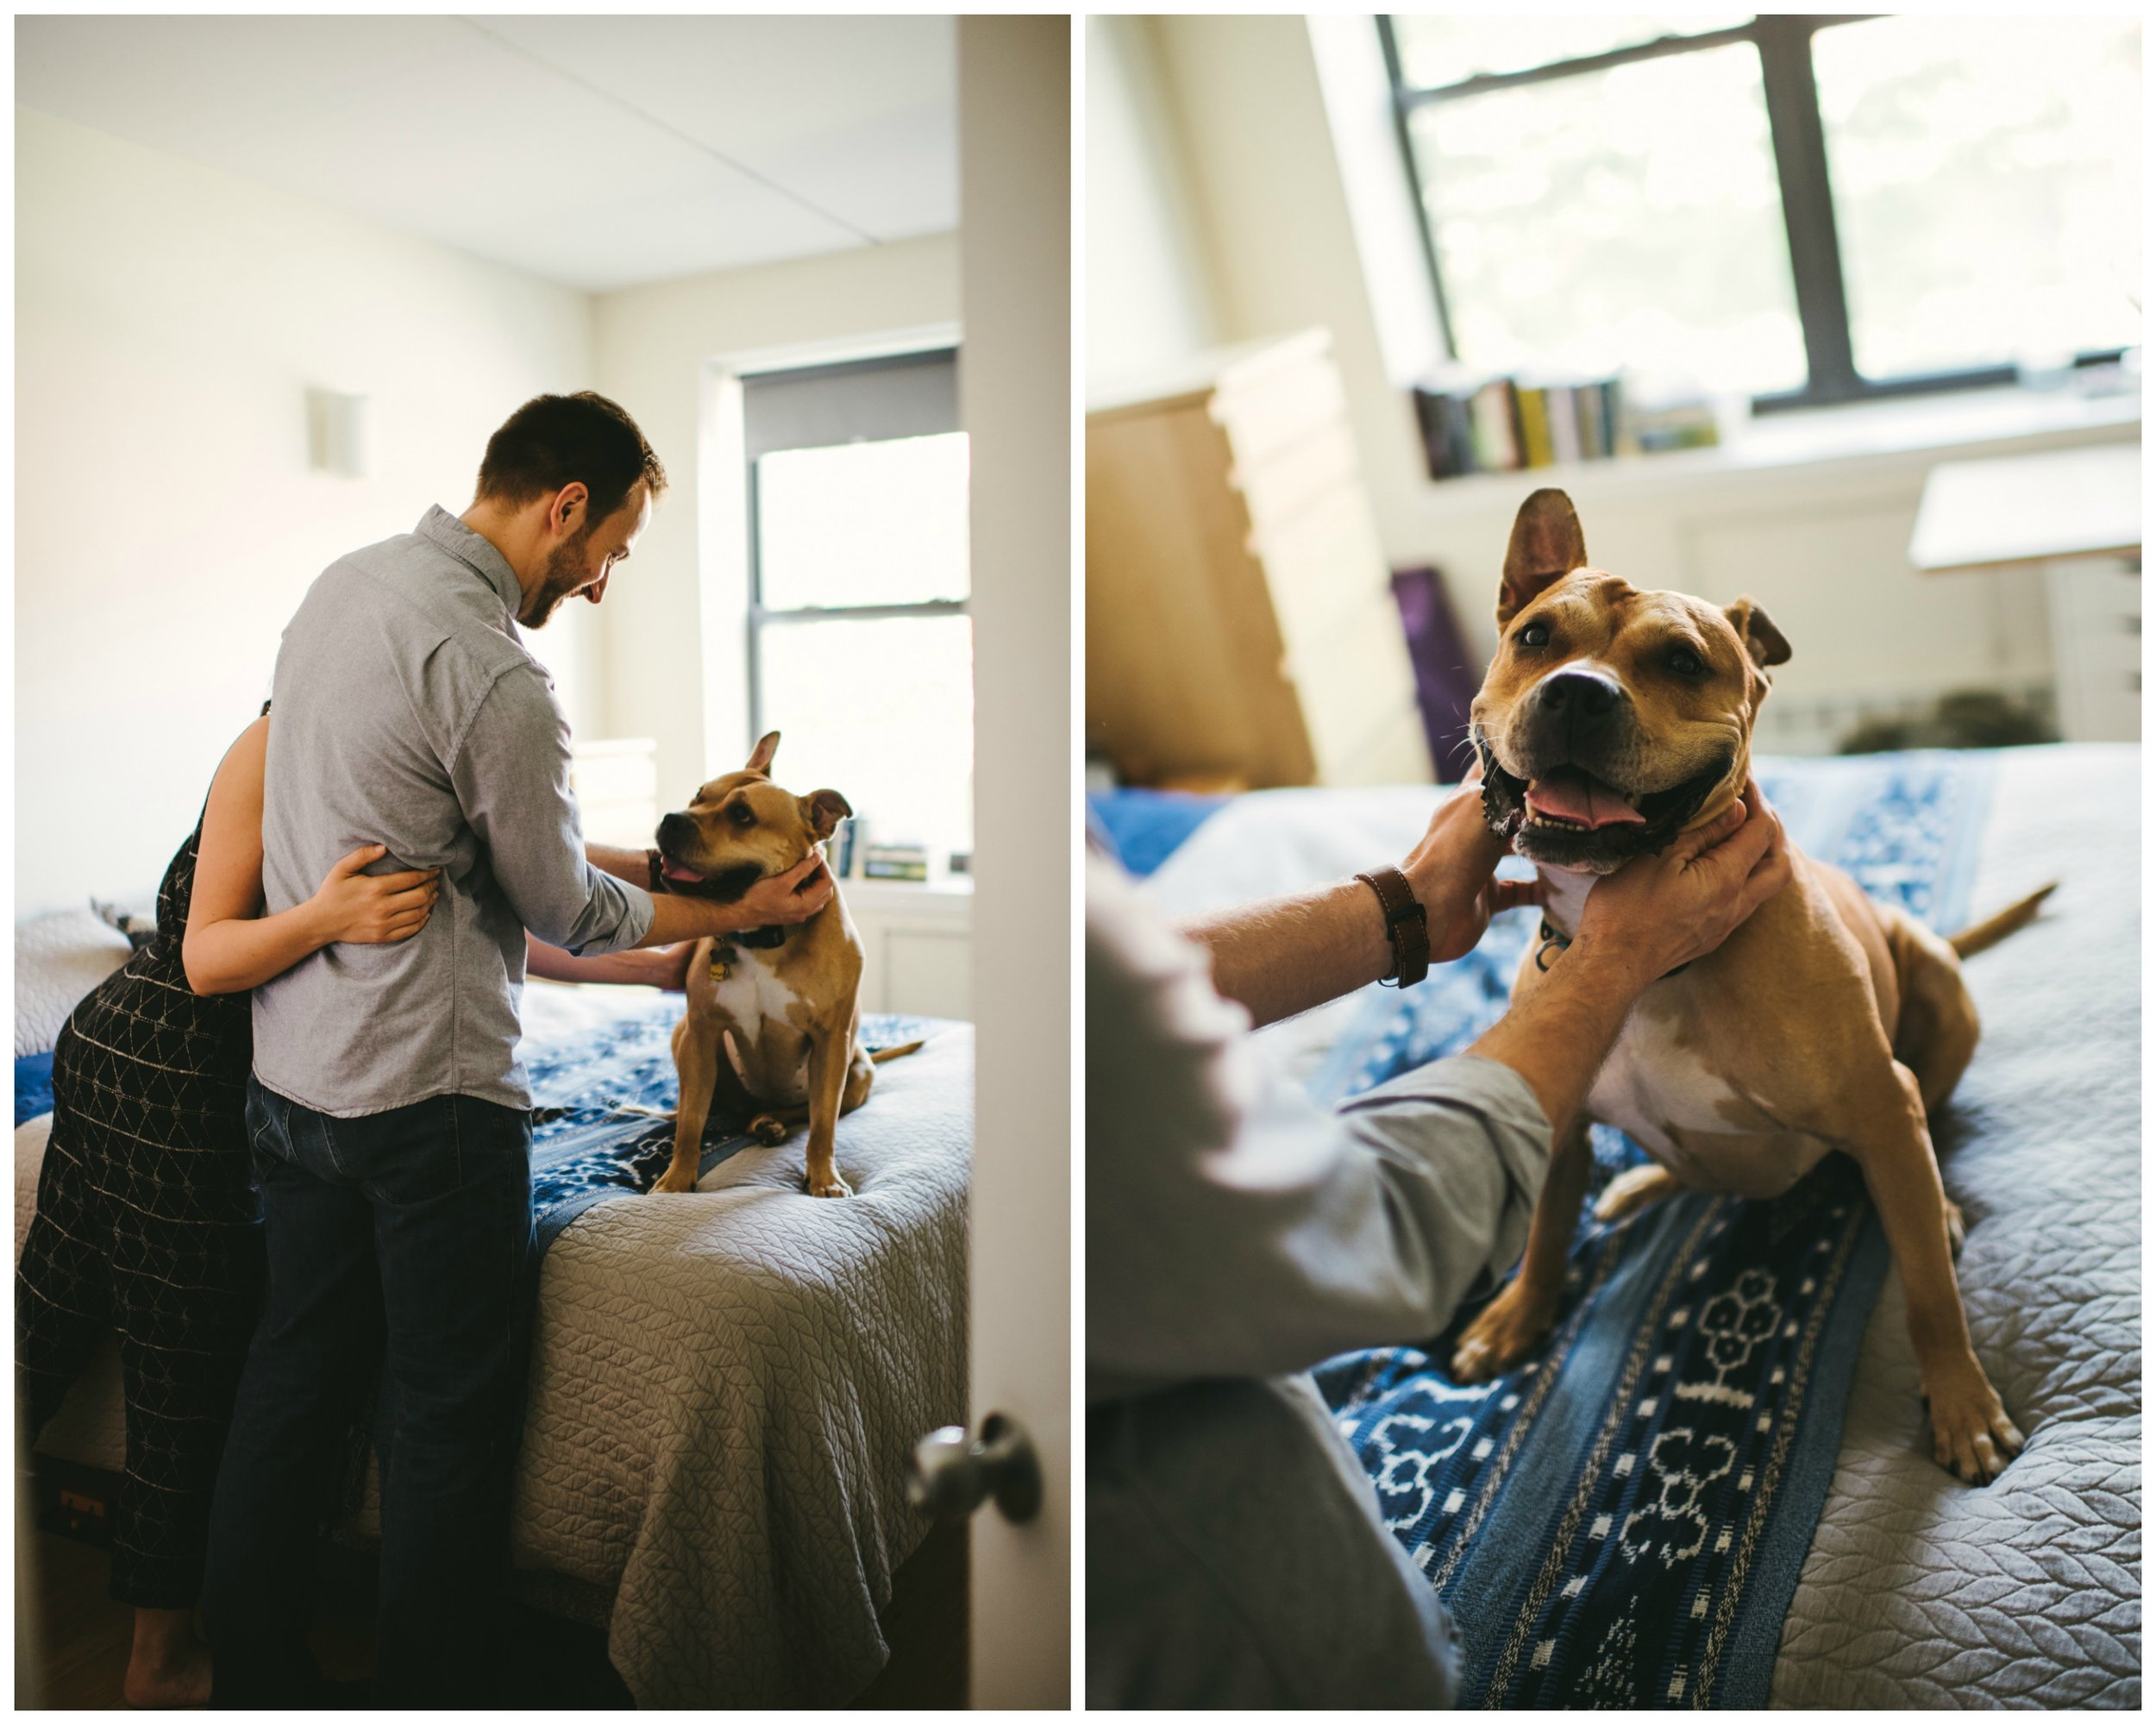 IN HOME BROOKLYN ENGAGEMENT SESSION - INTIMATE WEDDING PHOTOGRAPHER - TWOTWENTY by CHI-CHI AGBIM 1.jpg